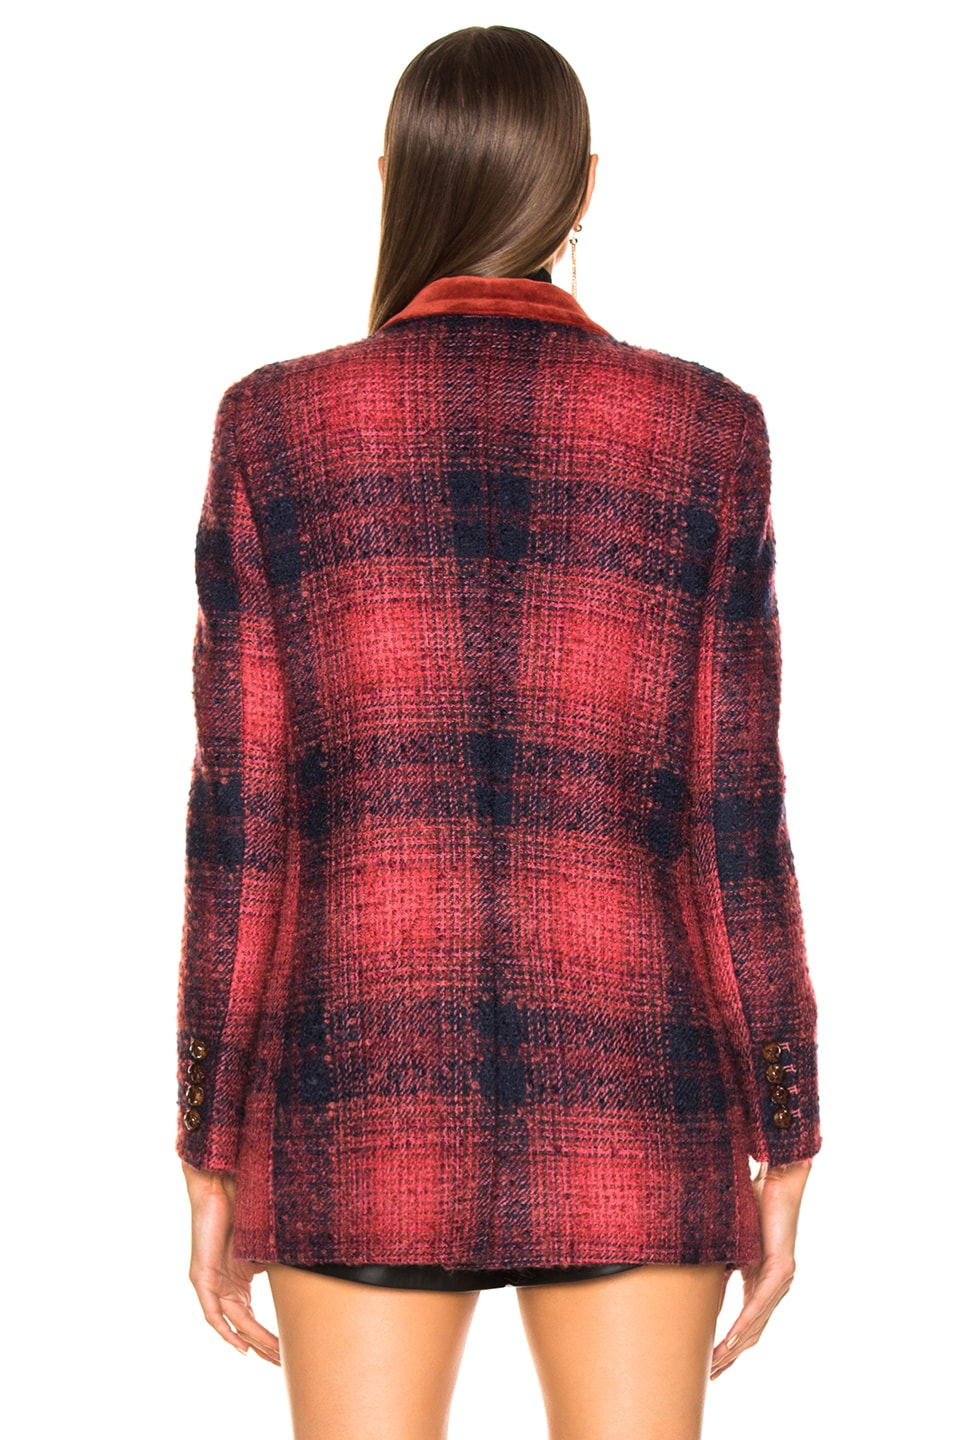 Image 4 of Blaze Milano Hickstead Everyday Double Breasted Blazer in Cherry Tartan